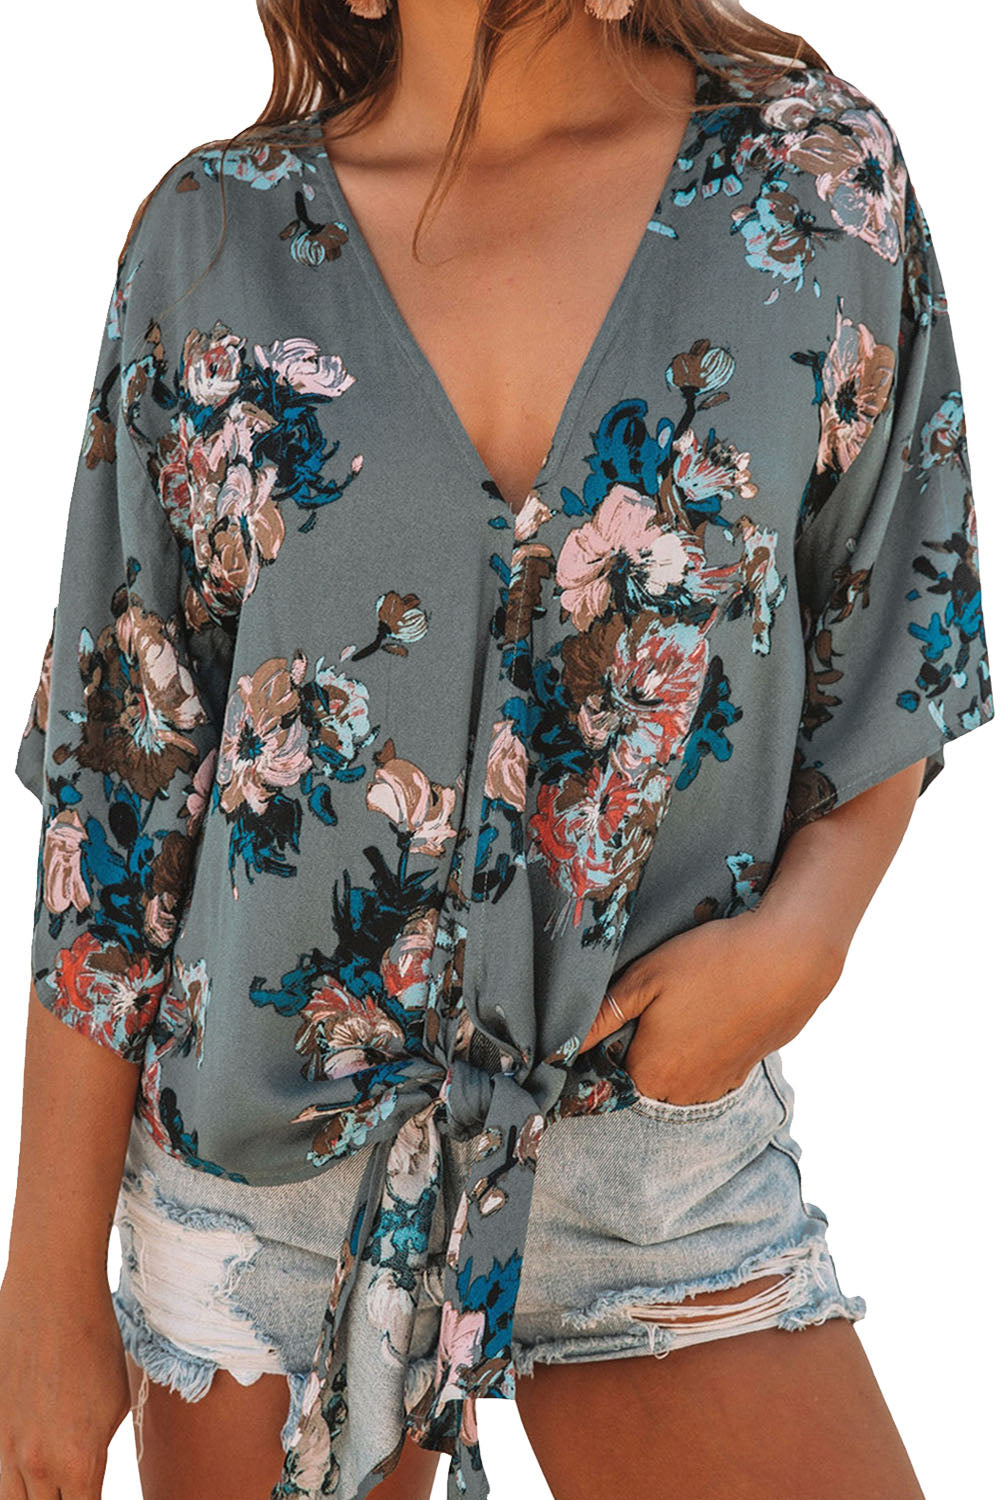 Green Floral Printed Deep V Neck Tie Front Blouse